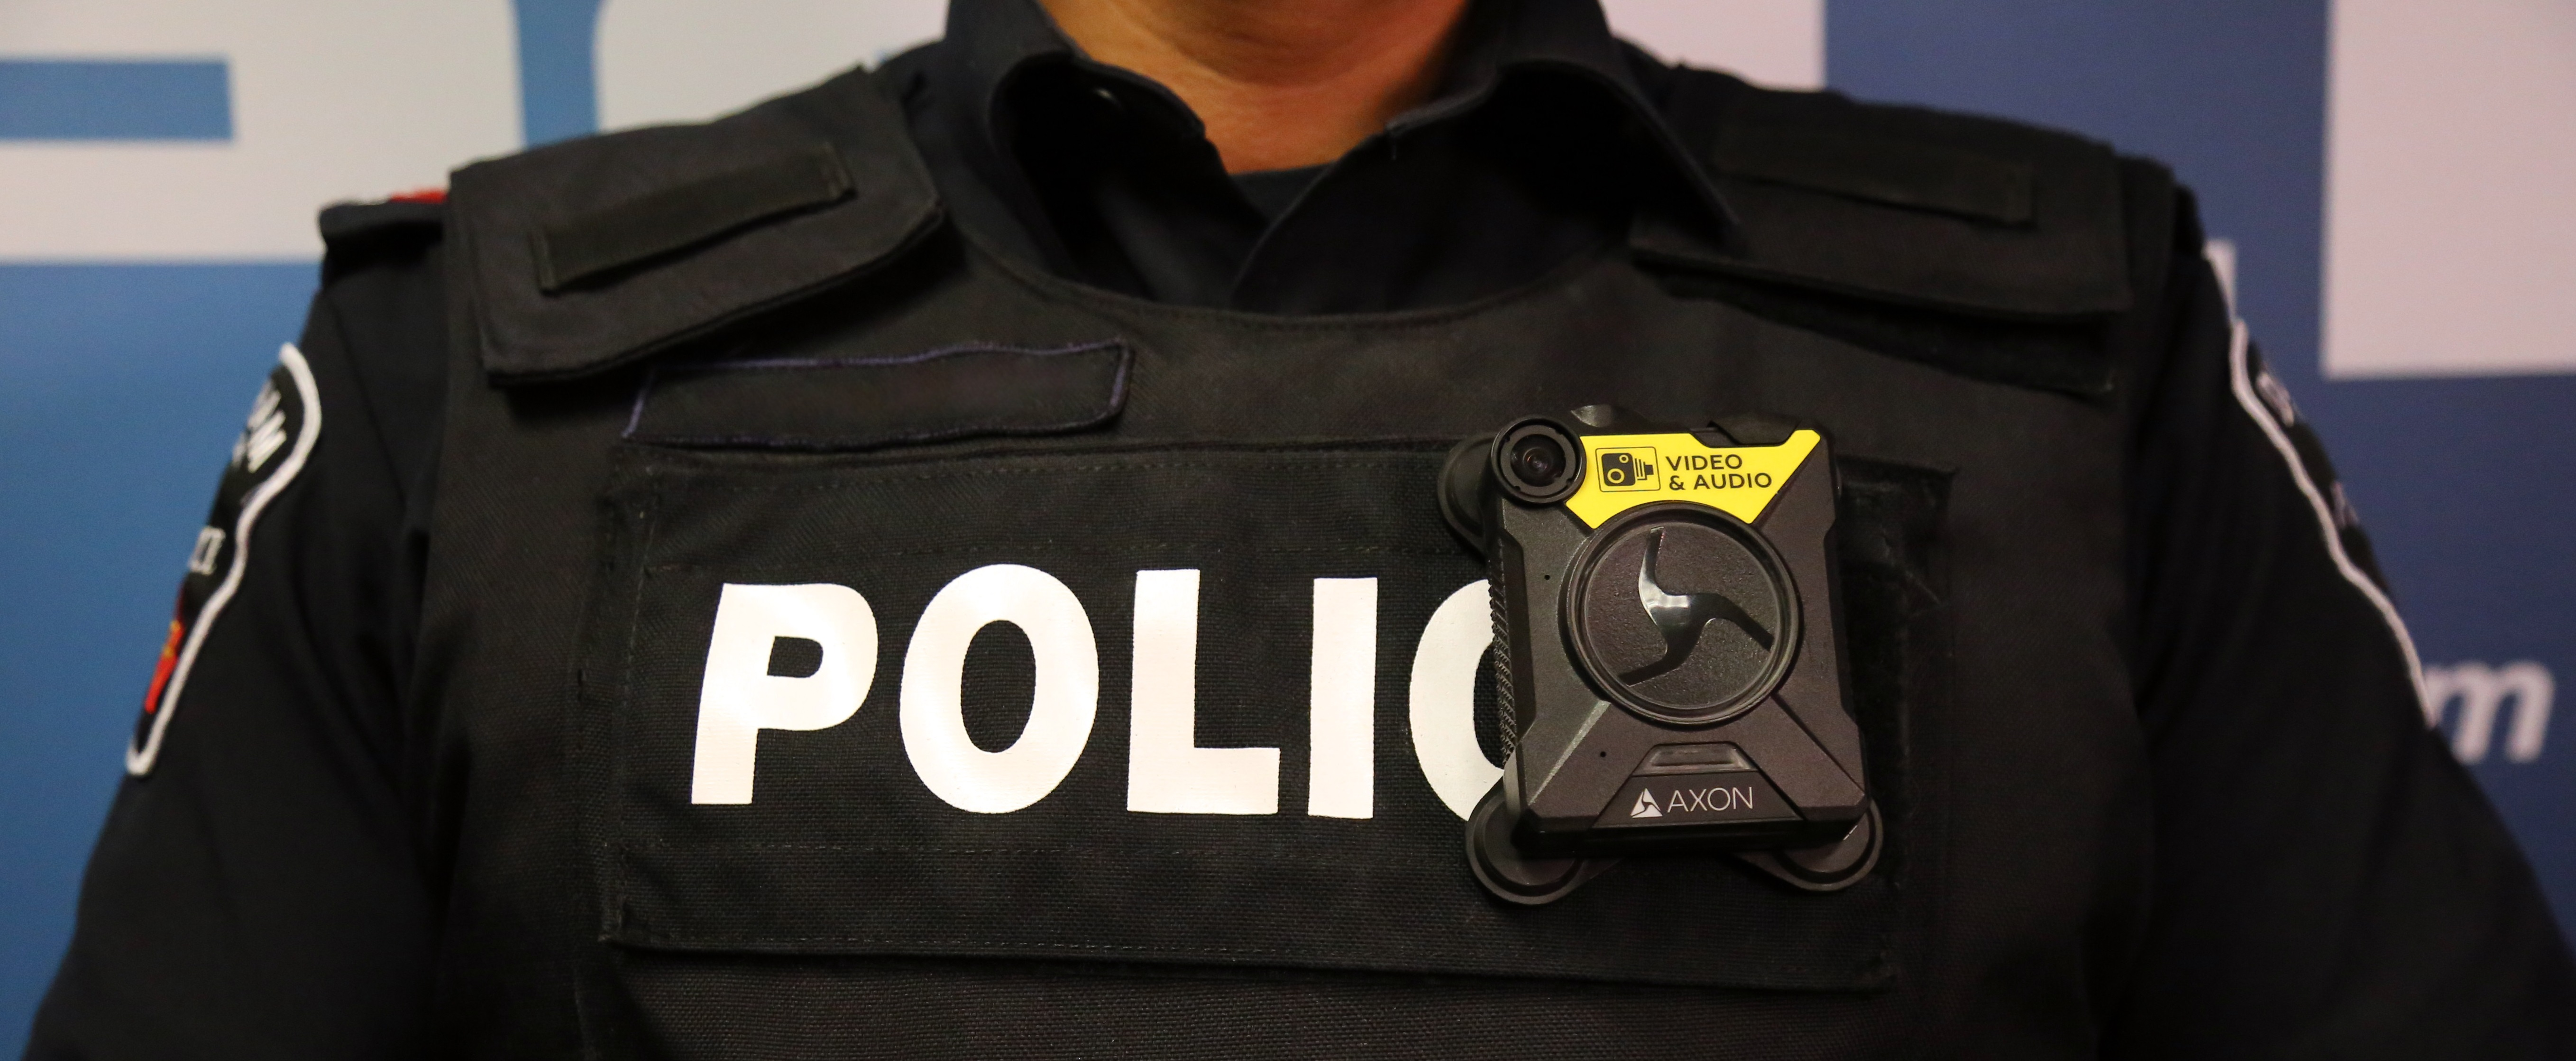 Police Officer wearing bullet proof identifiable vest